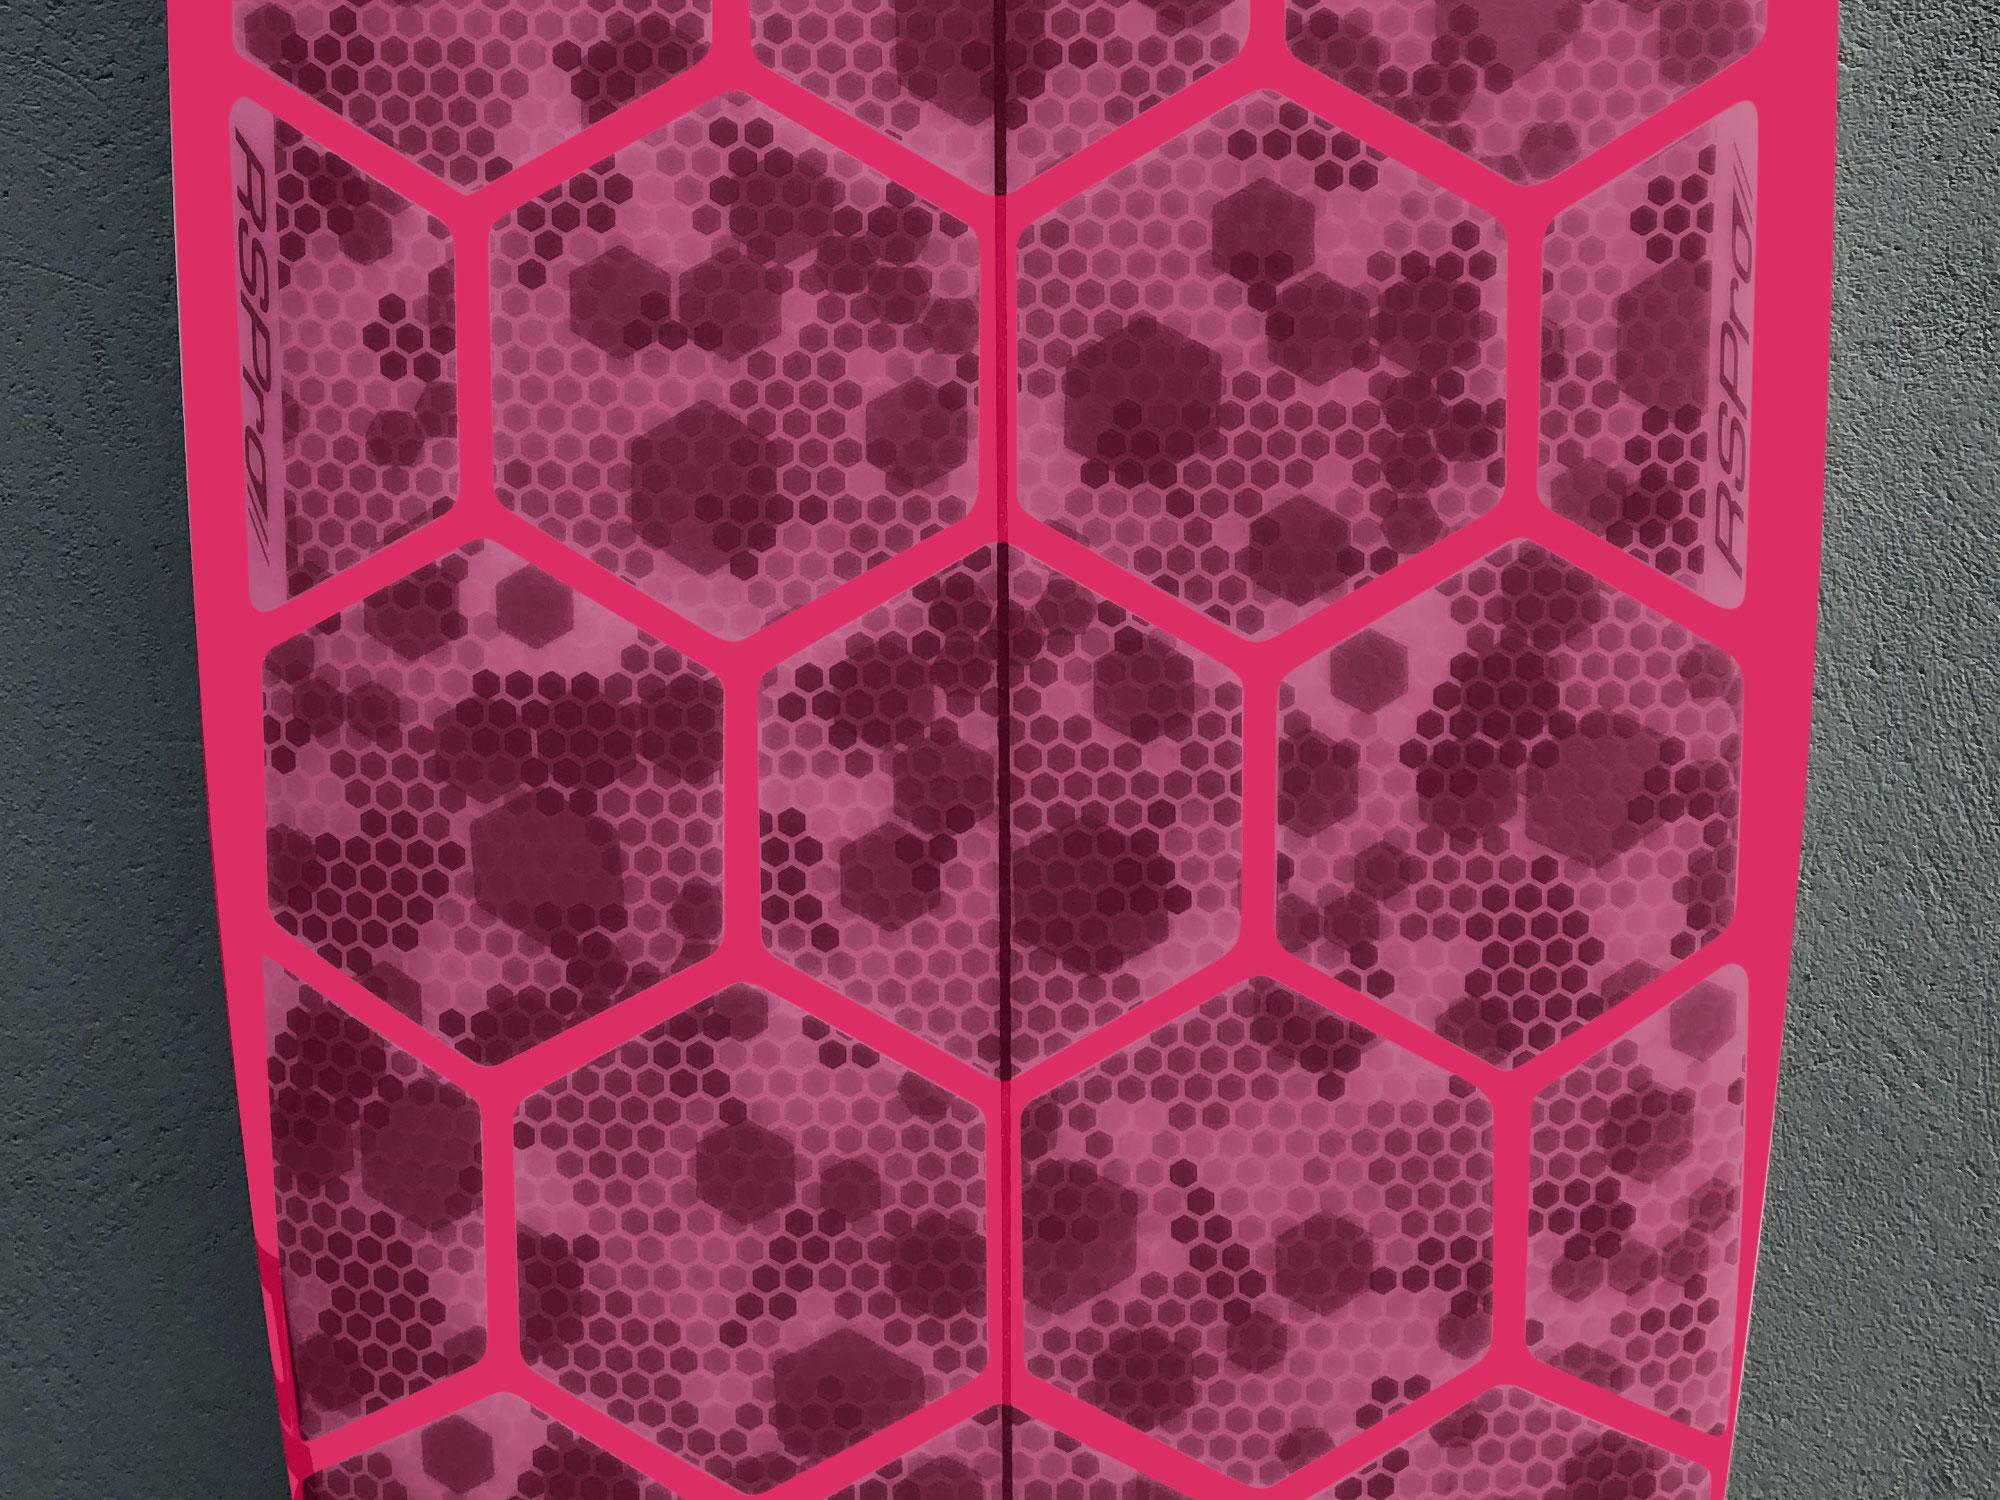 HexaTraction_Camo_Edition_by_RSPro_on_a_magenta_surfboard_1024x1024@2x.jpg